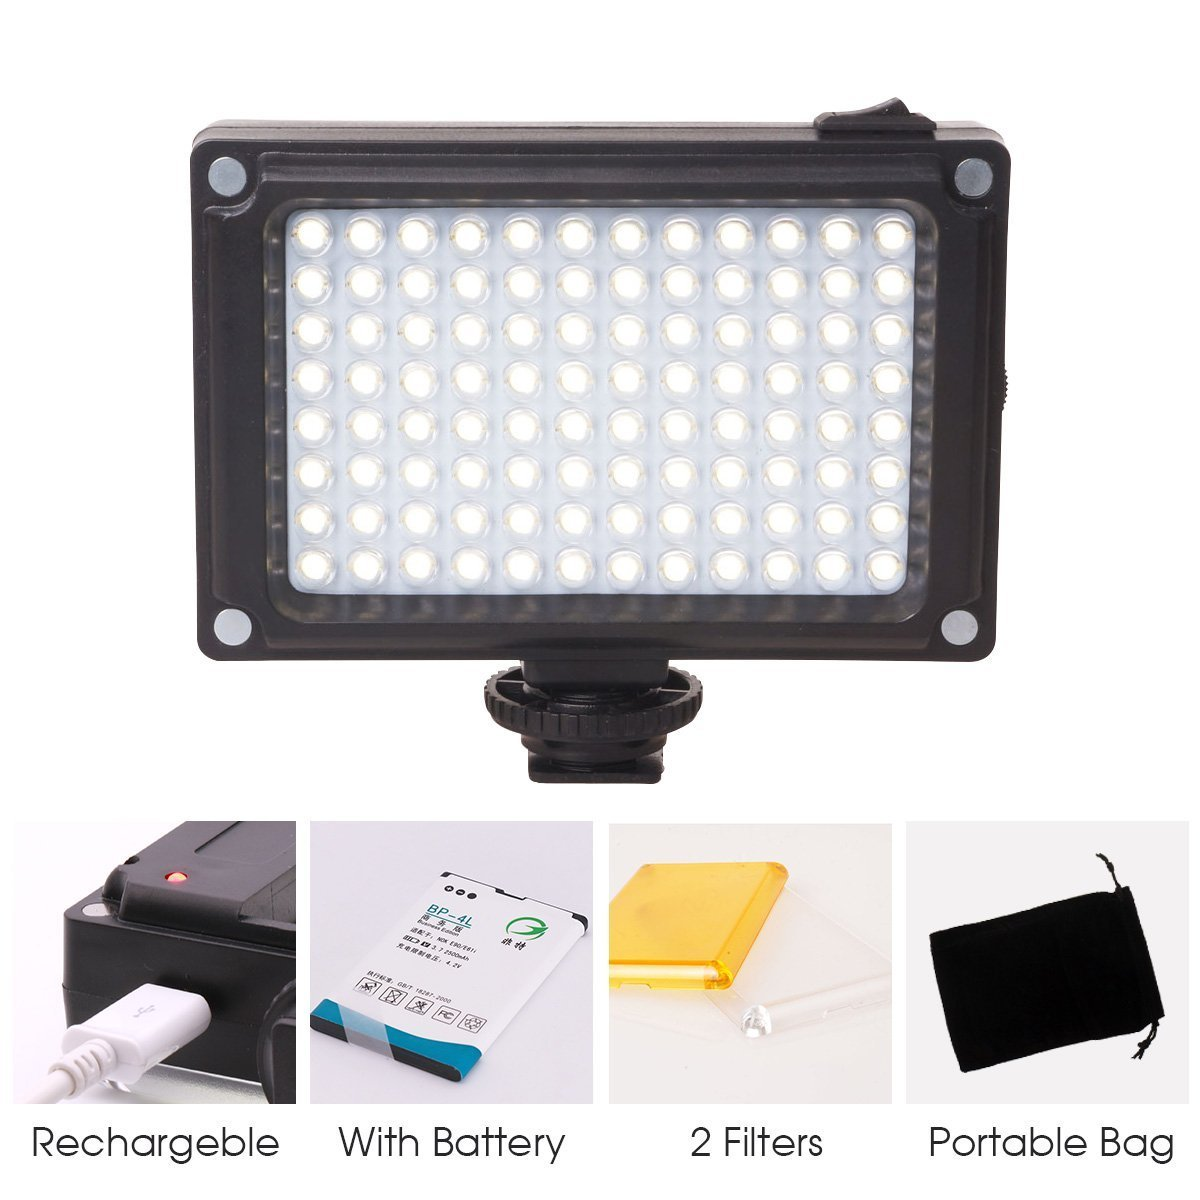 ULANZI Rechargeble 96 LED Video Light Pocket Mini su fotocamera Led Light con 2500mAh Batteria e filtri magnetici per Sony Panasonic Canon Nikon DSLR Videocamera